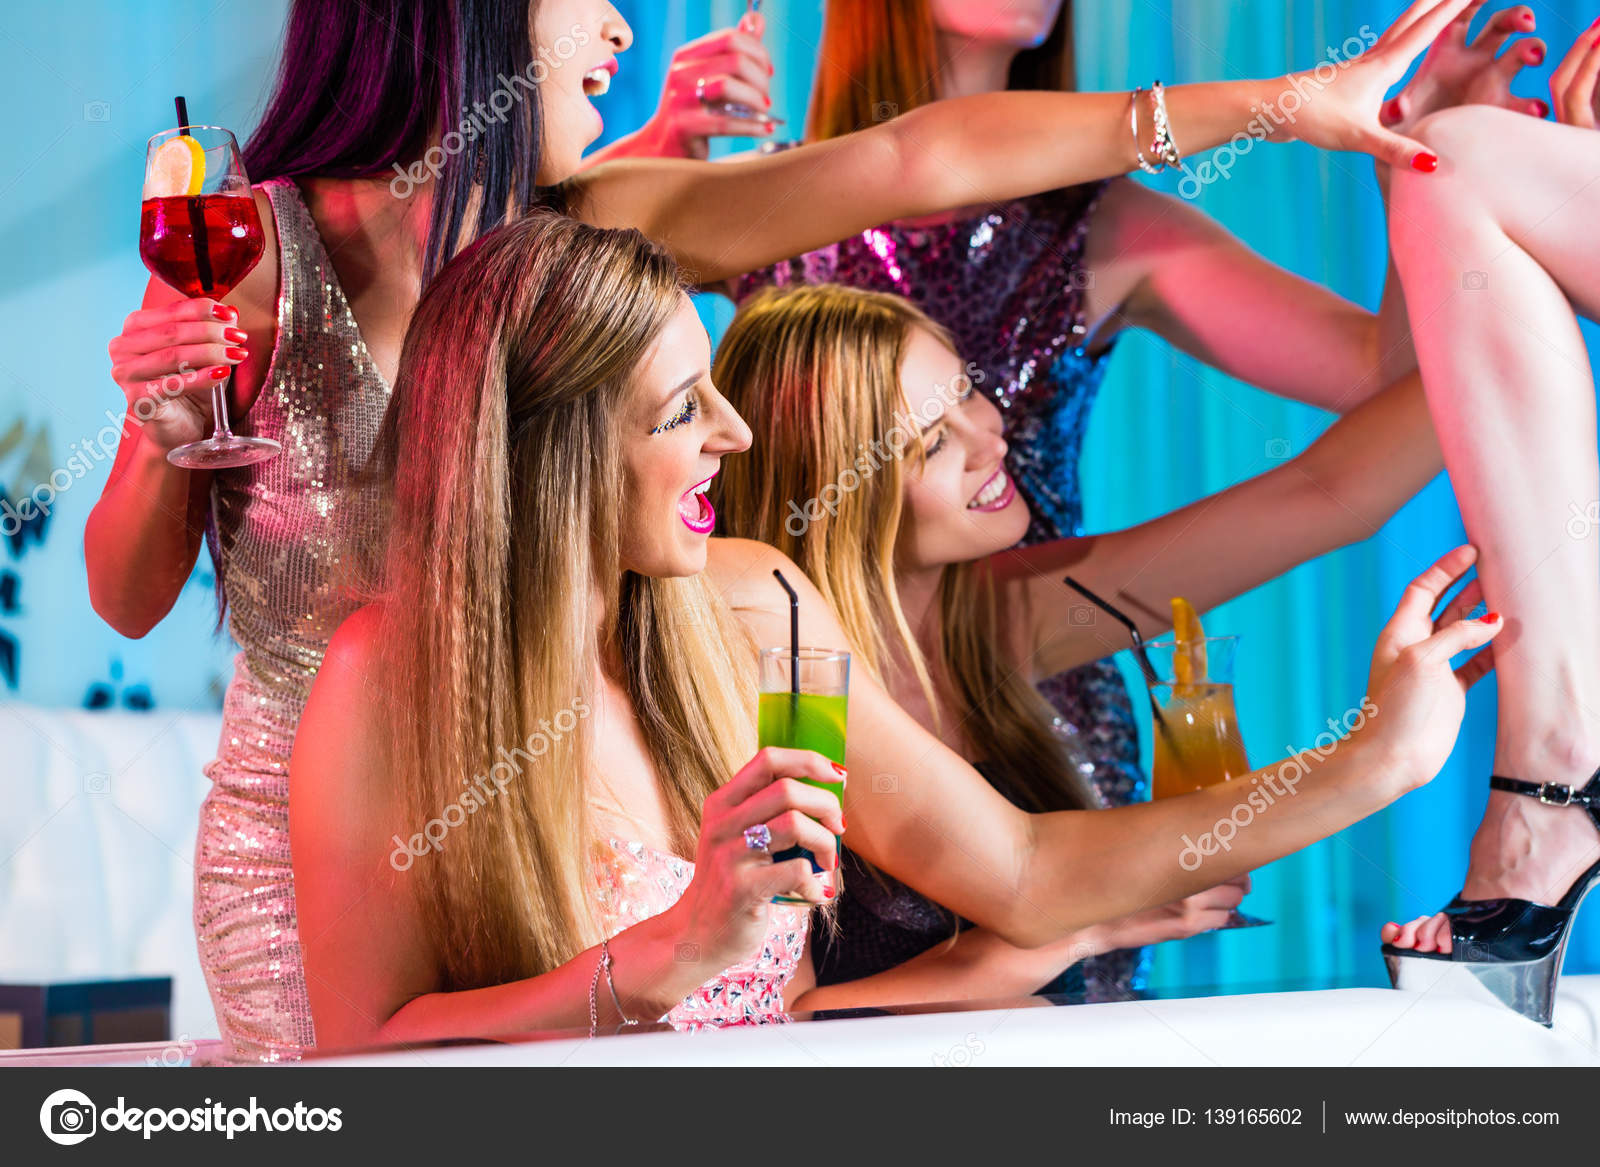 Charming phrase drunk teen party strip remarkable, useful